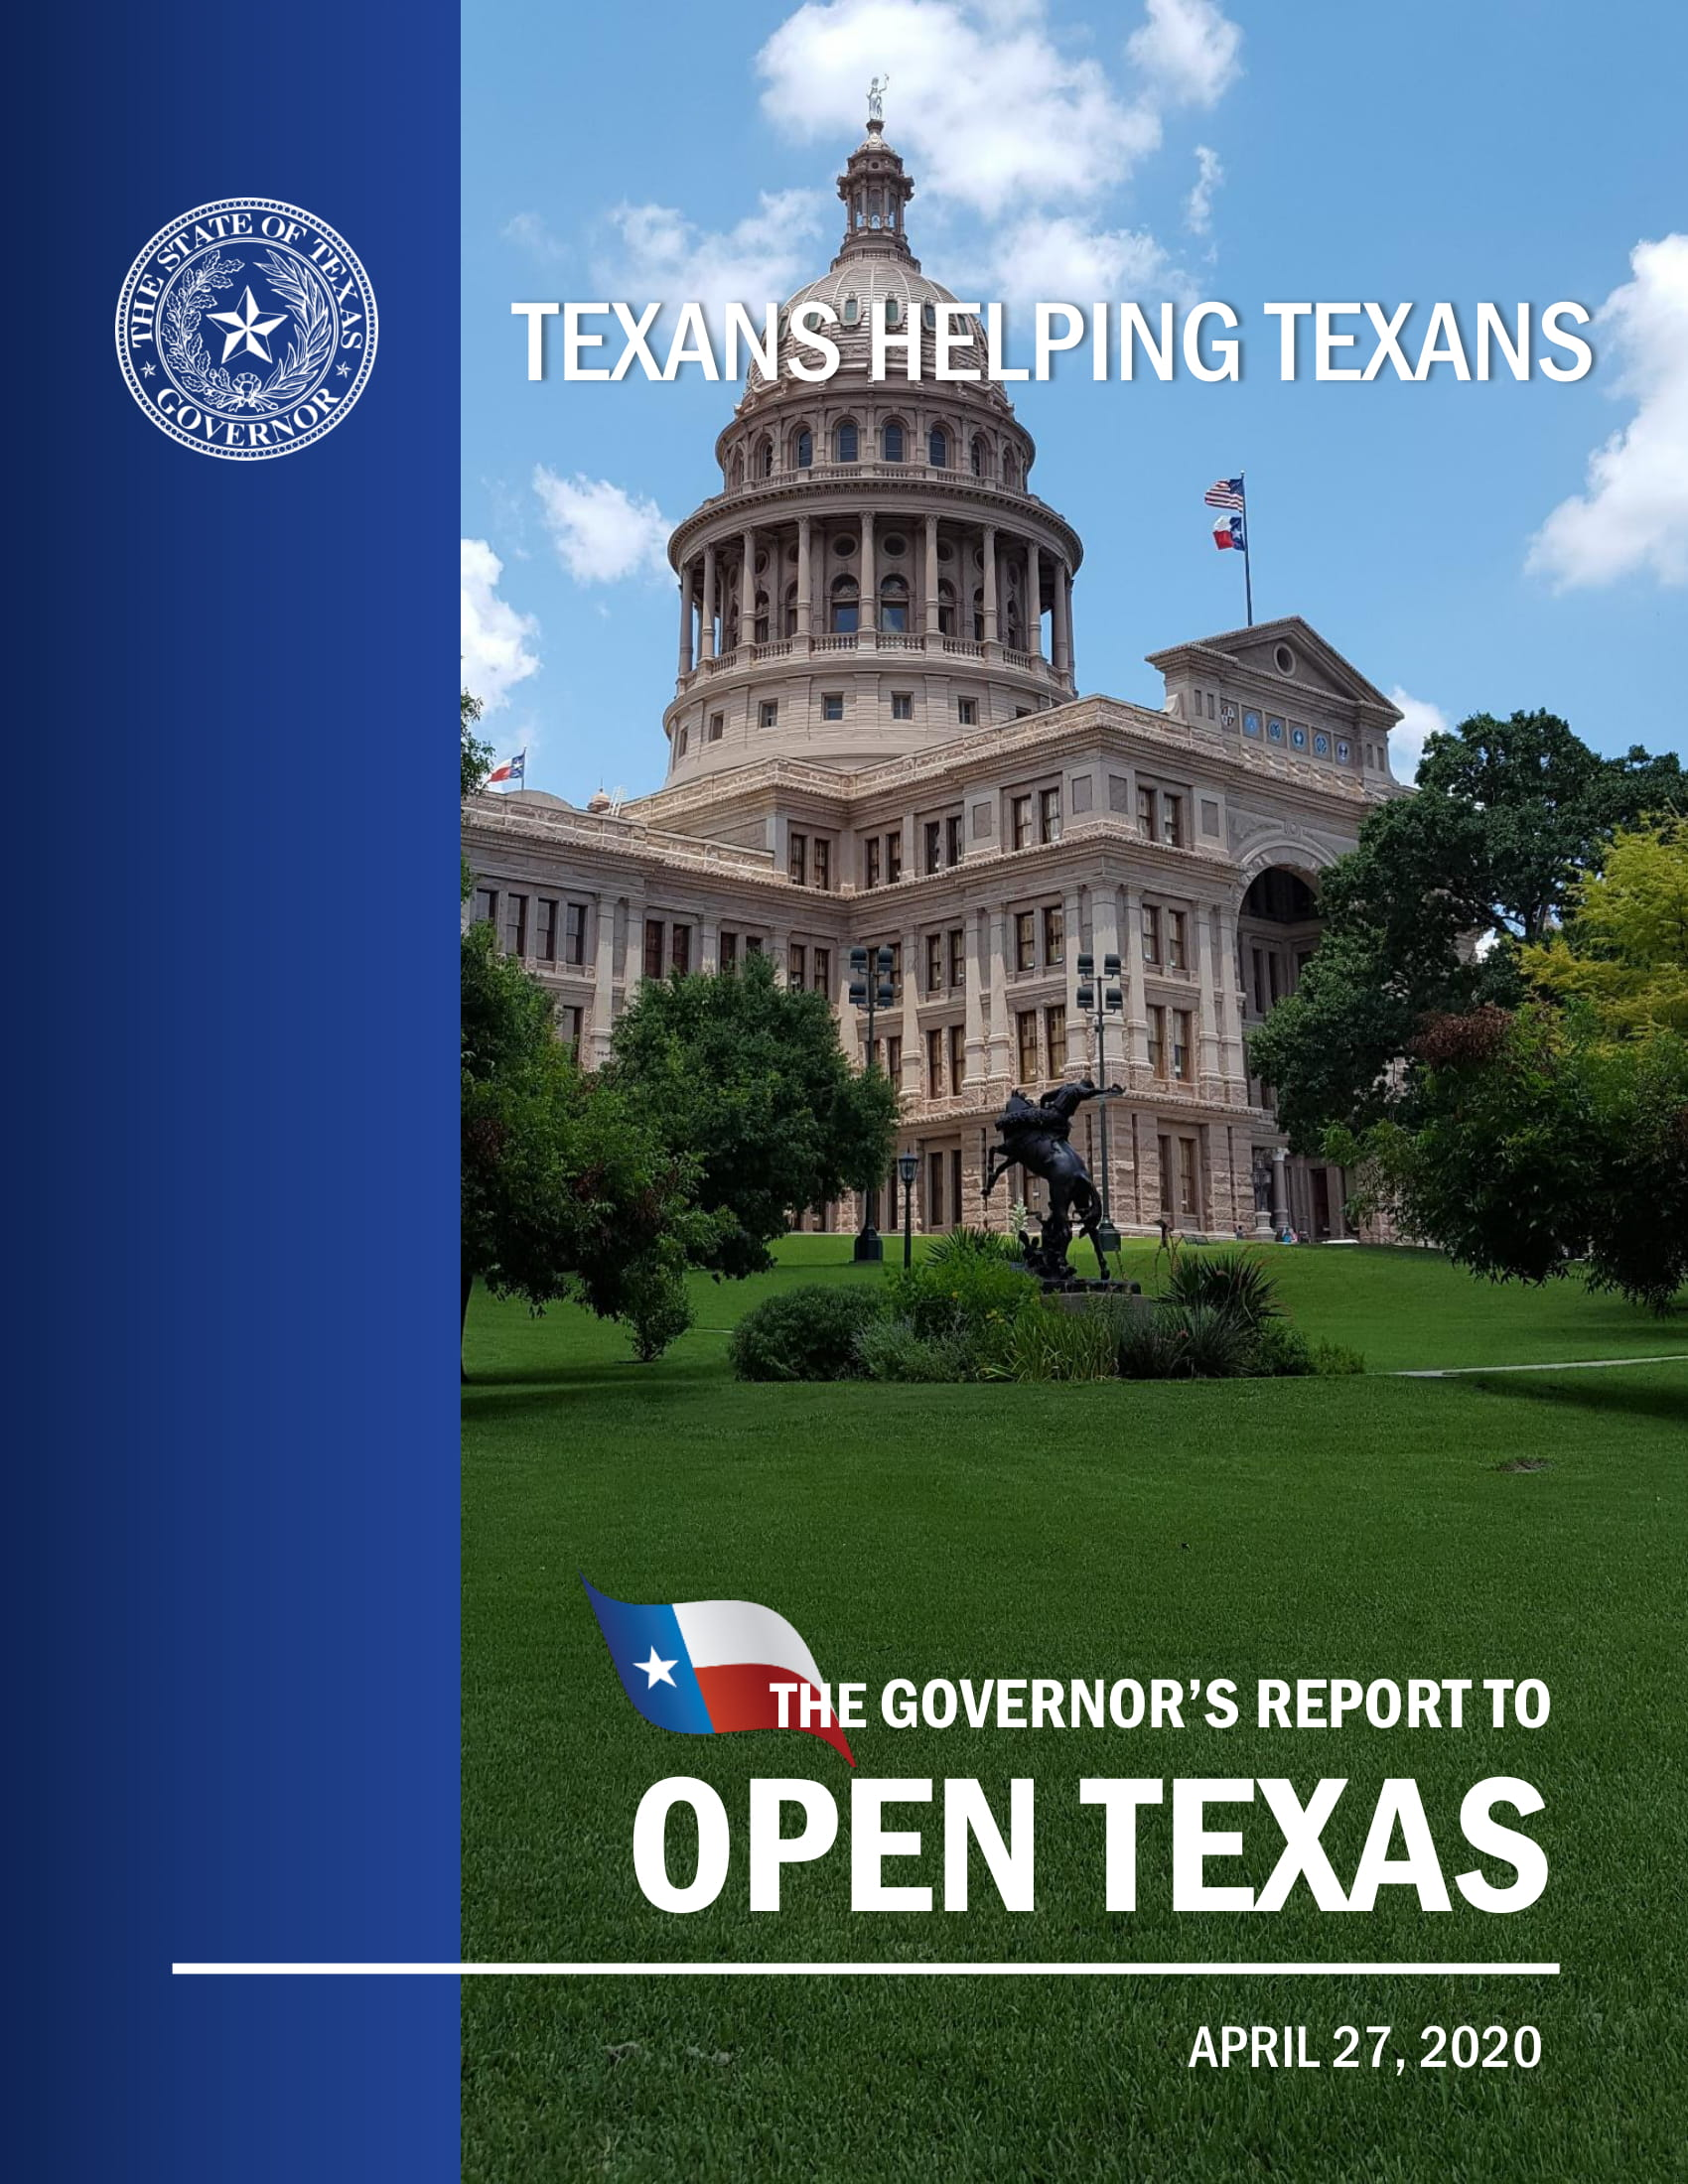 Texans Helping Texans - The Governor's Report to Open Texas